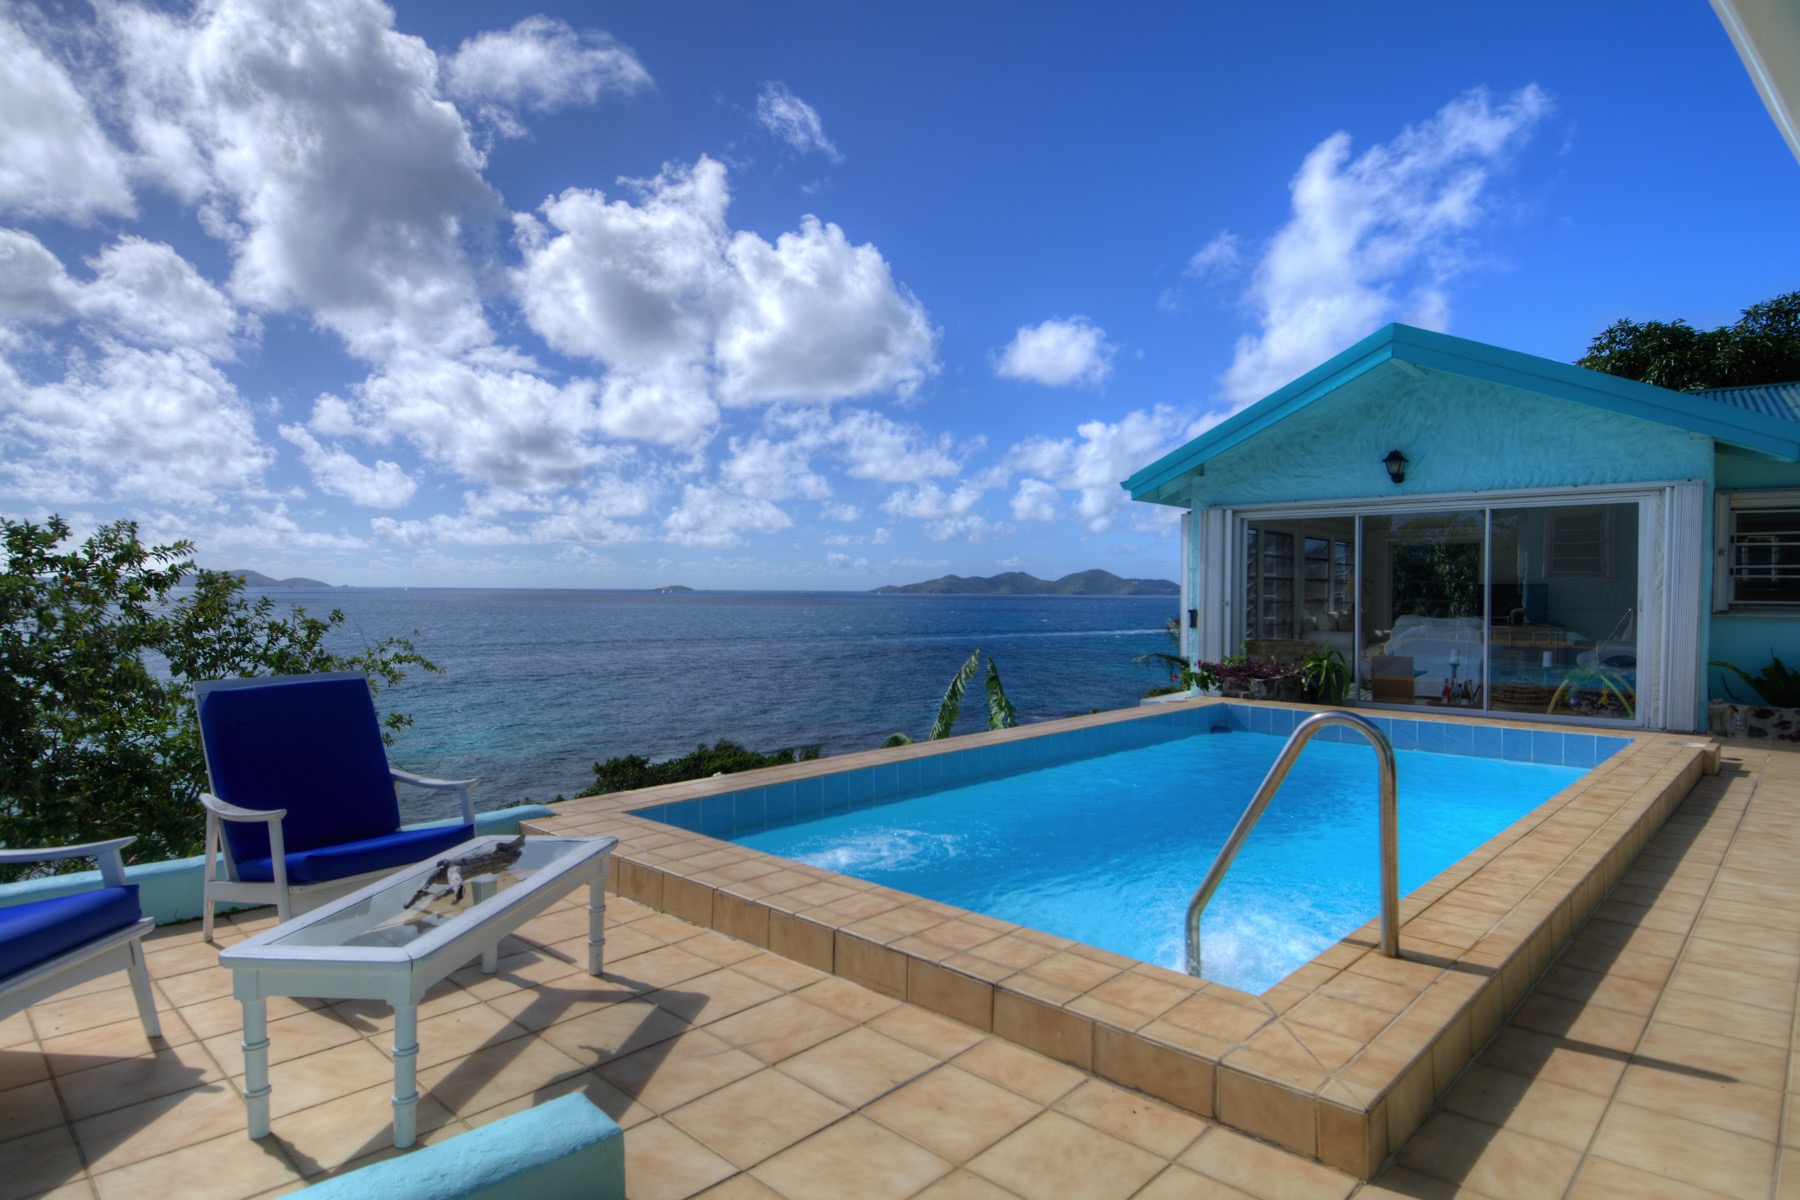 Single Family Home for Sale at Barton House Havers, British Virgin Islands